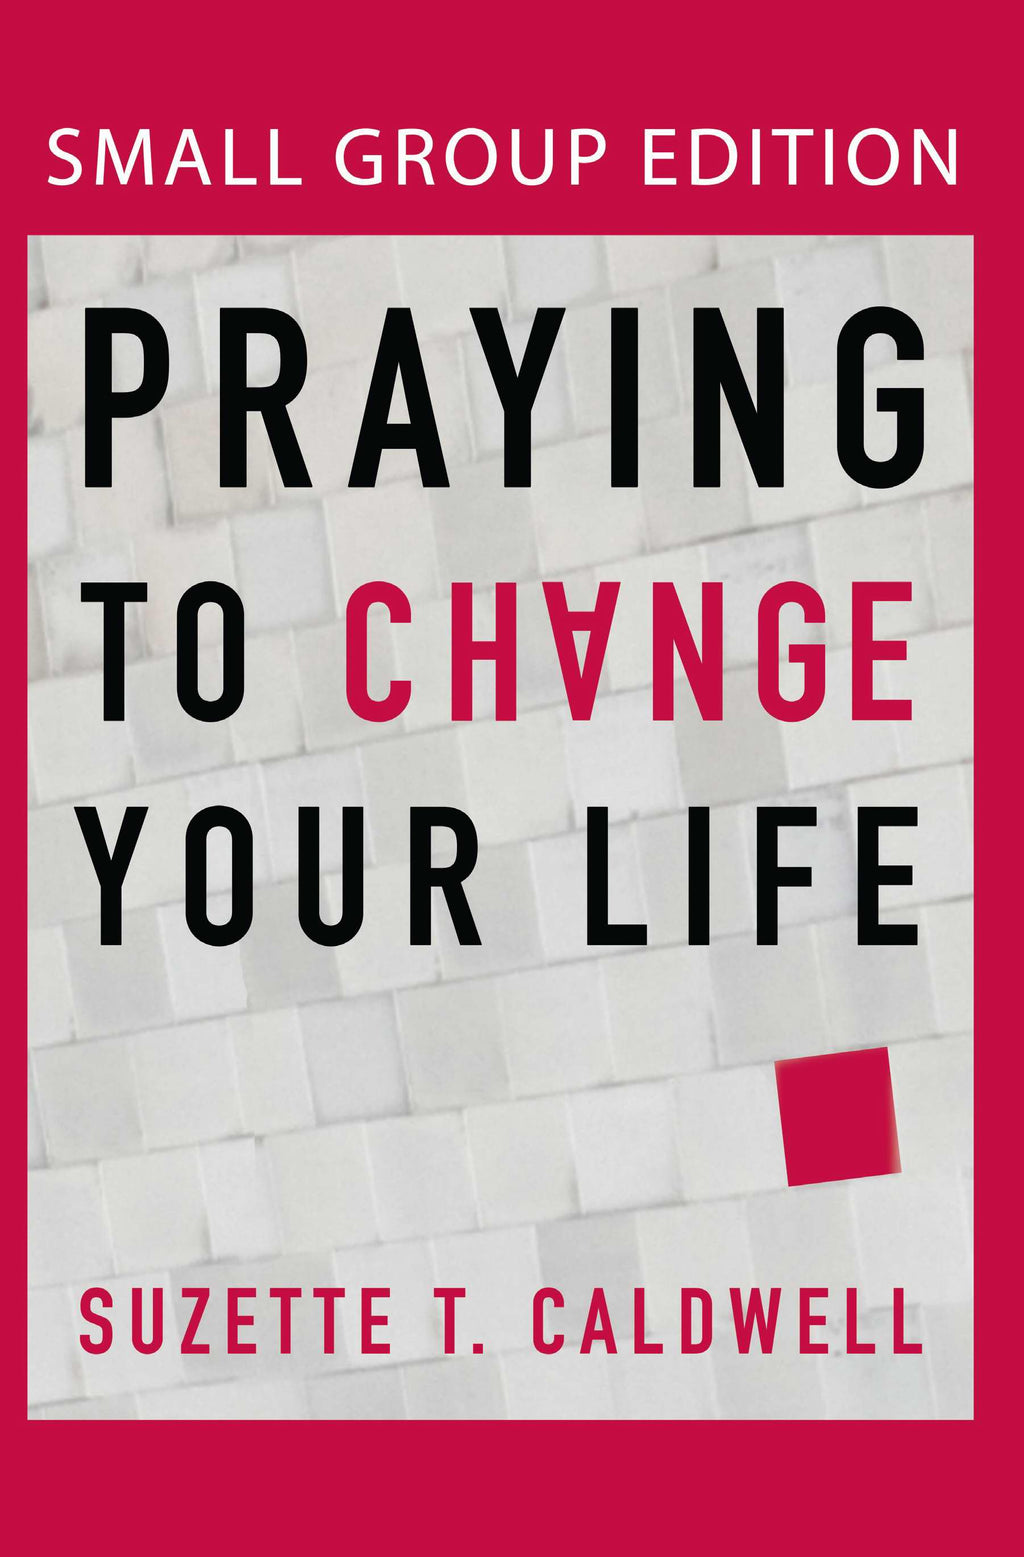 Praying To Change Your Life-Small Group Edition